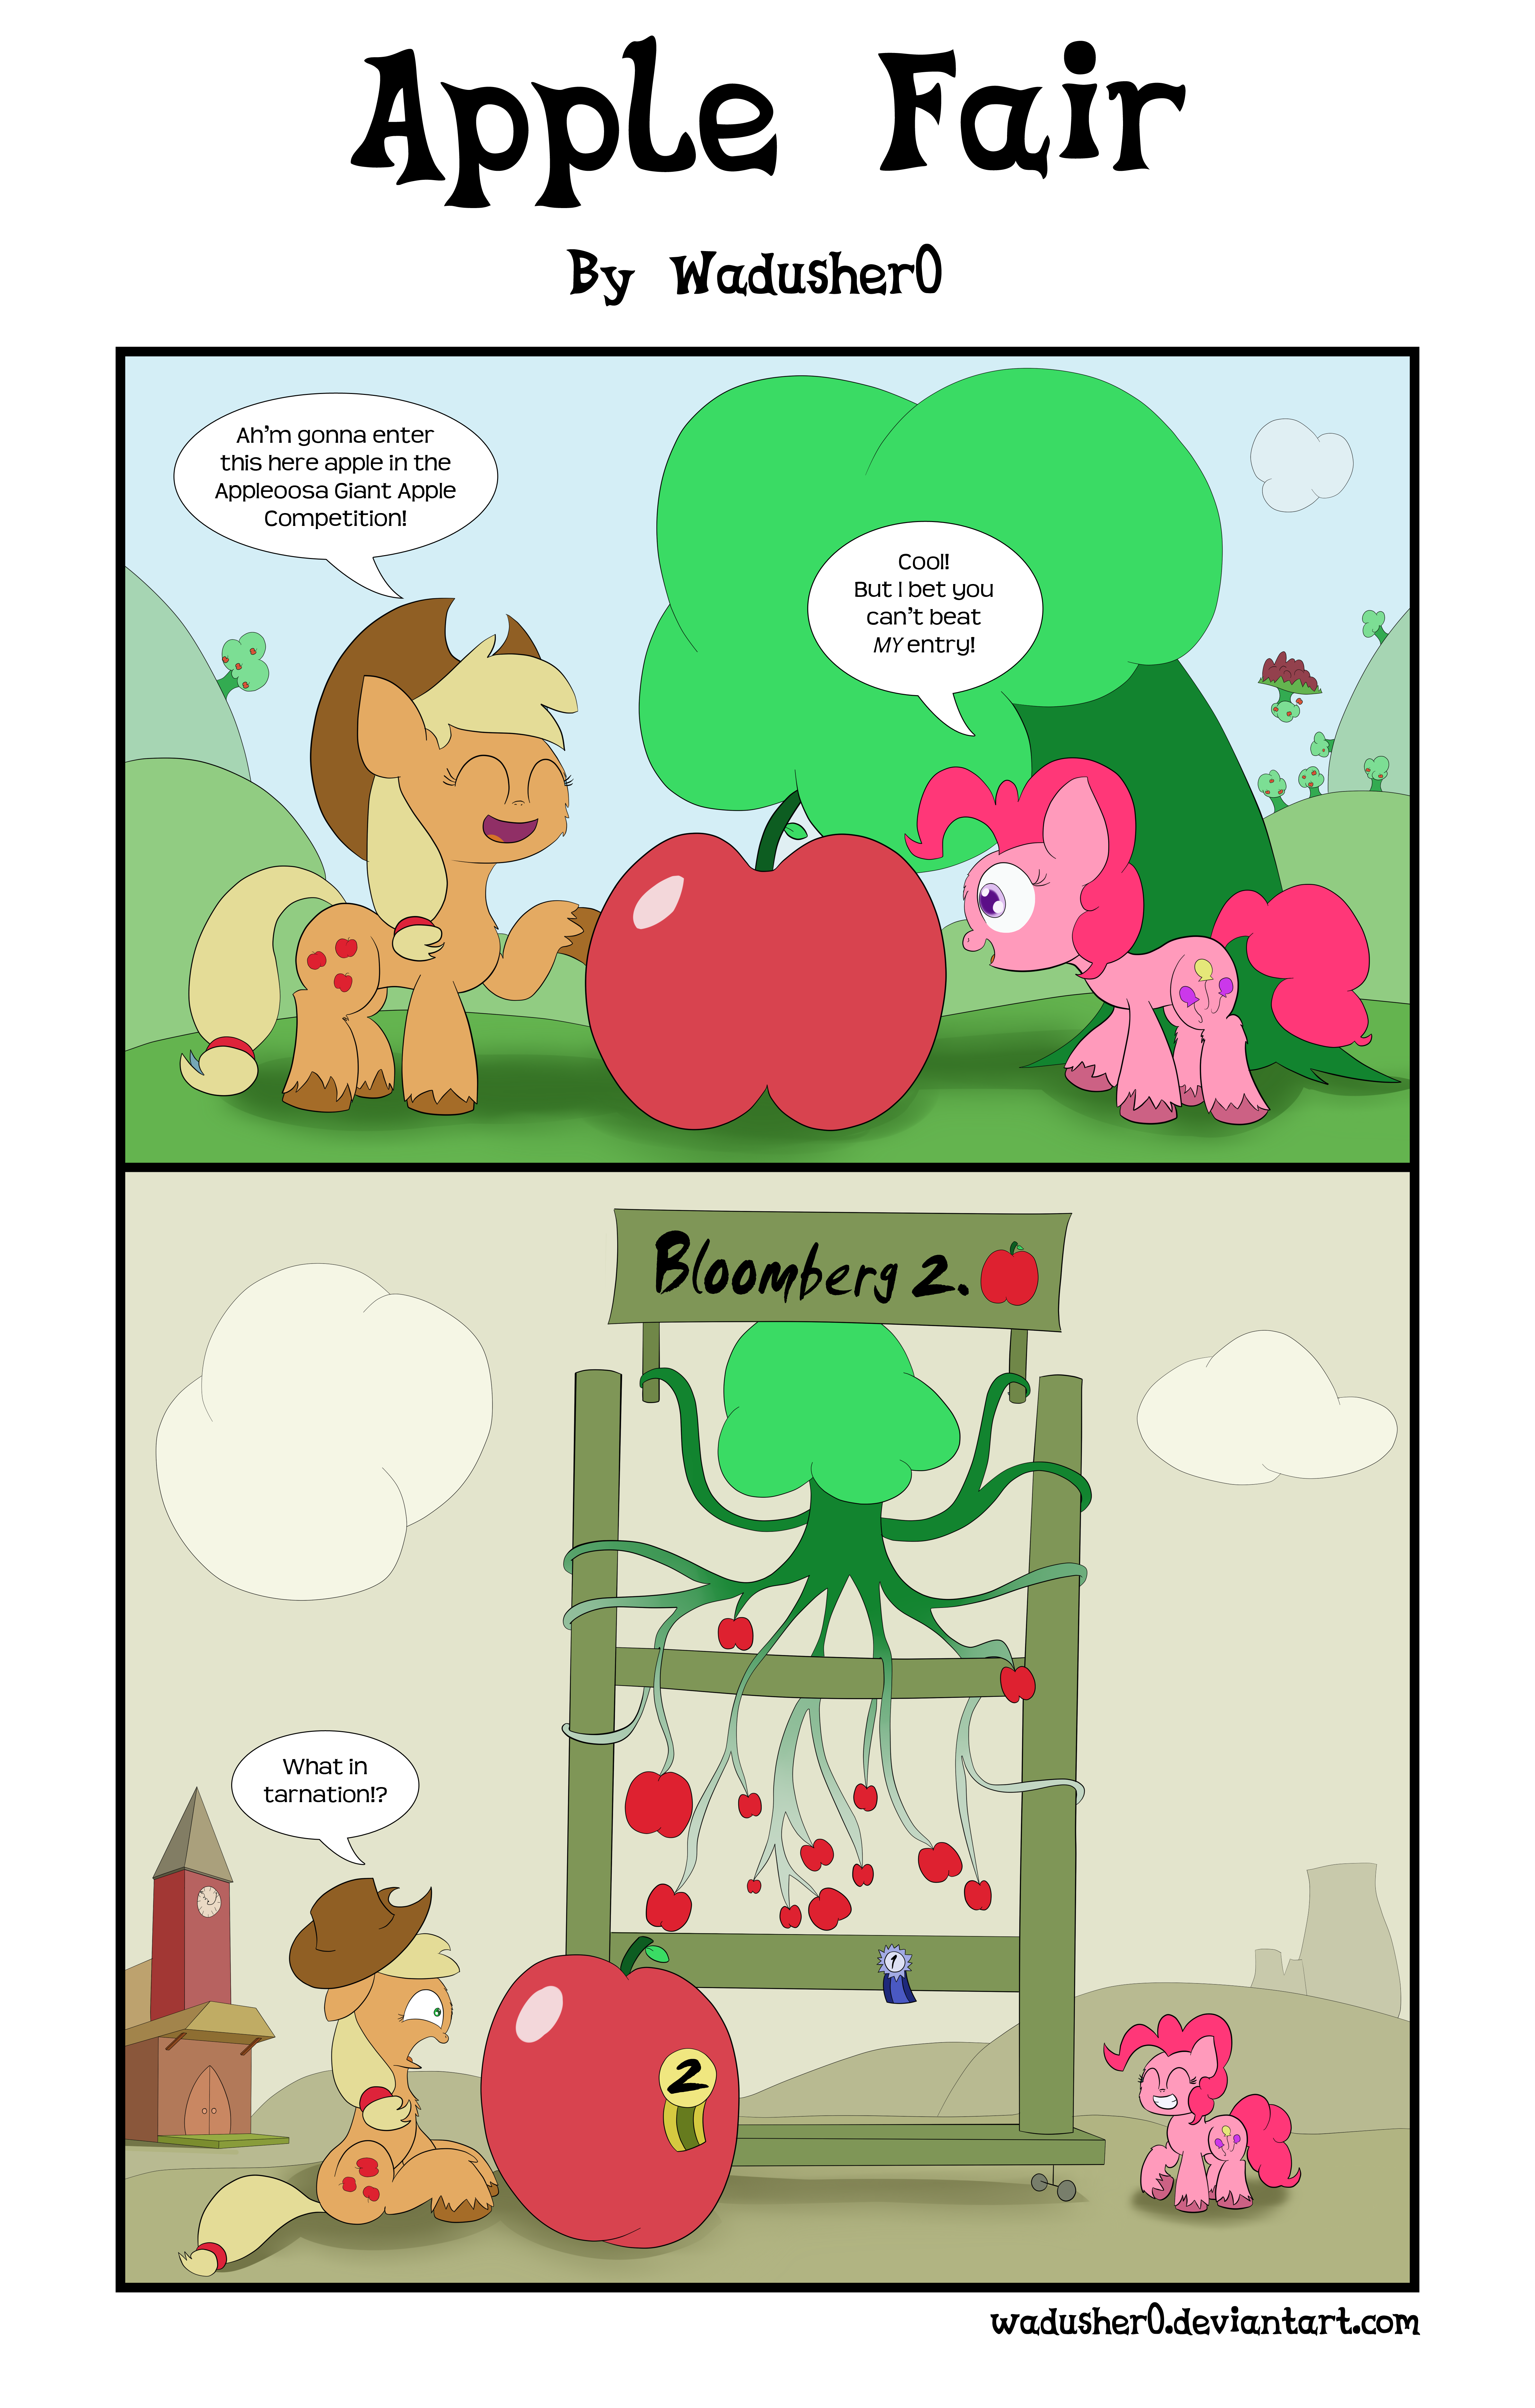 Apple Fair by Wadusher0